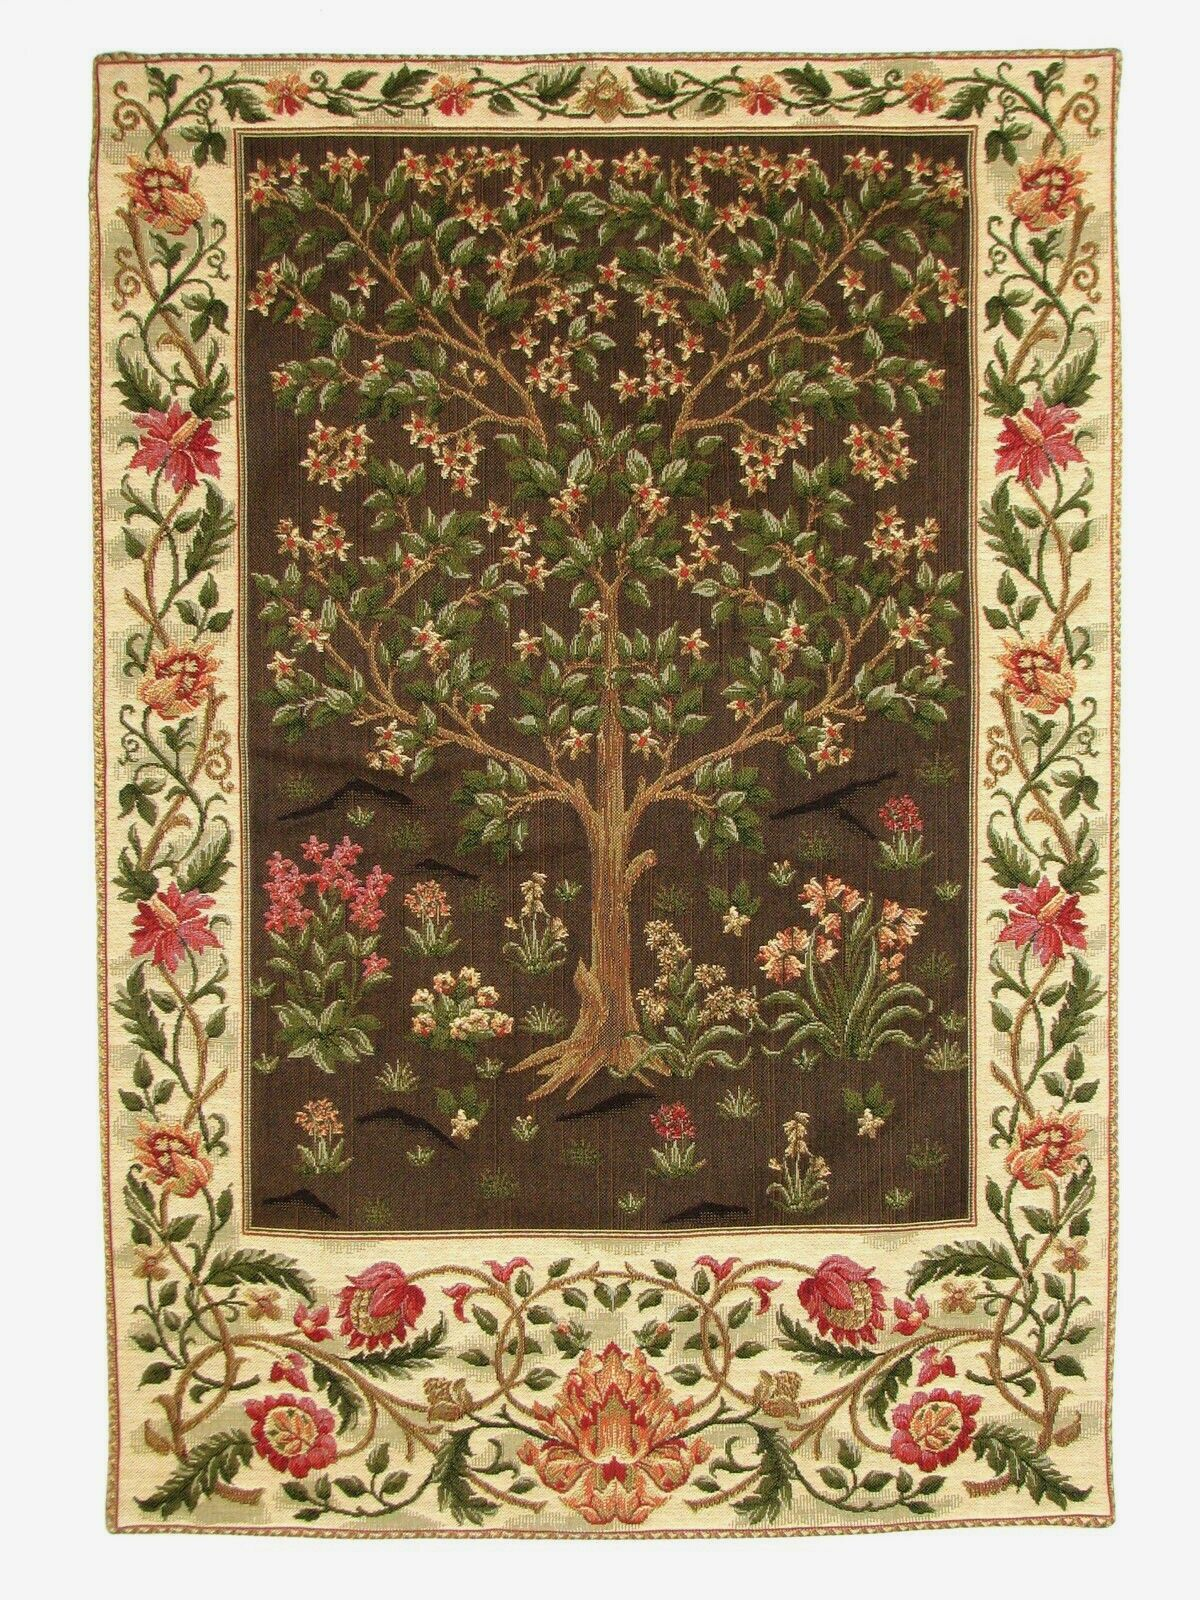 26  X 18  TREE OF LIFE WM MORRIS LINED BELGIAN TAPESTRY WALL HANGING, ROD SLEEVE